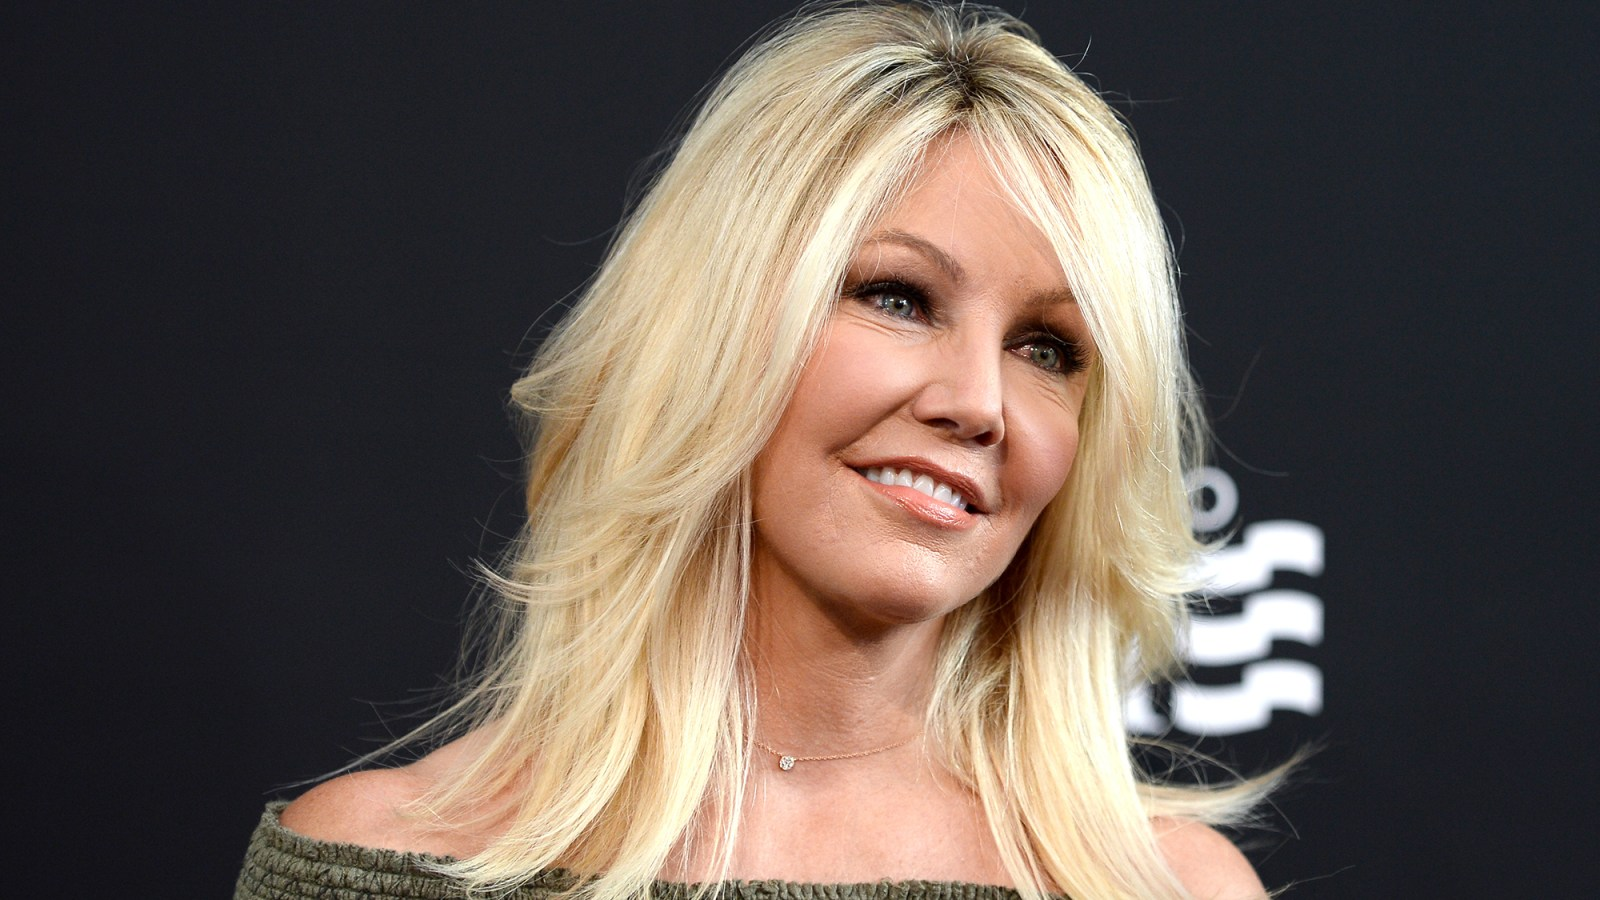 Heather Locklear May Be Sued By Emt After Alleged Attack